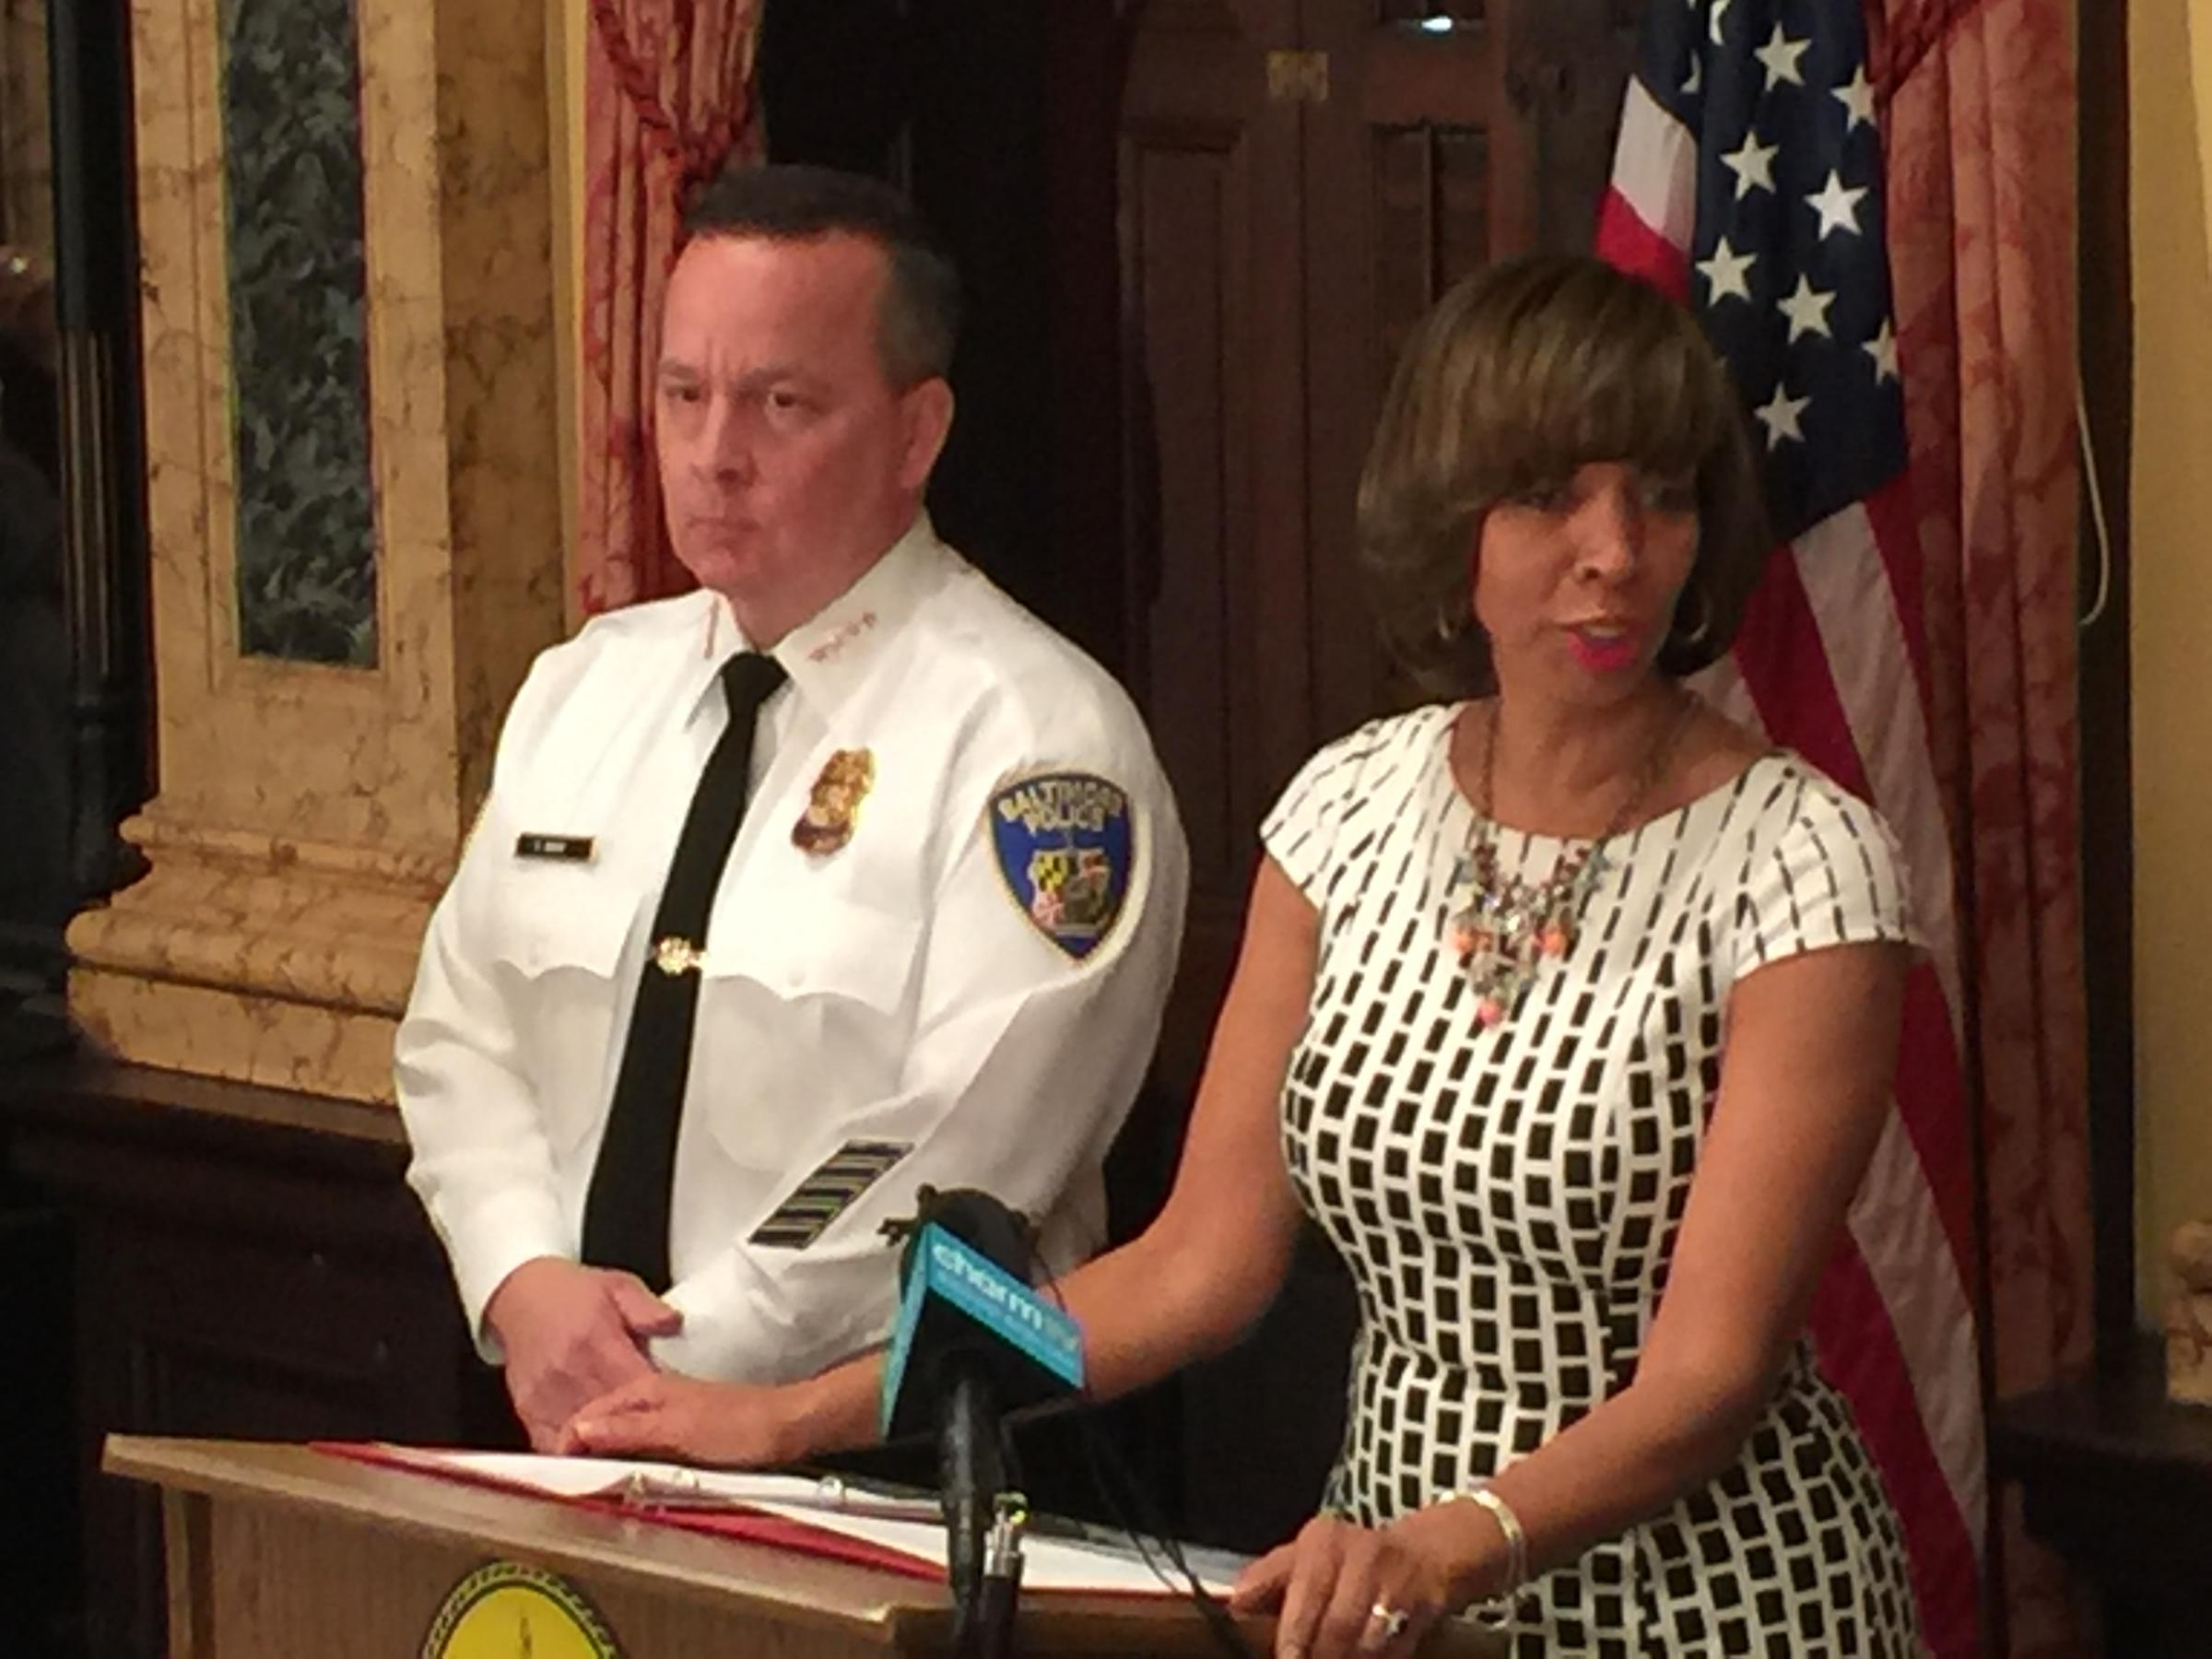 Police monitor finalists answer public's questions | WYPR